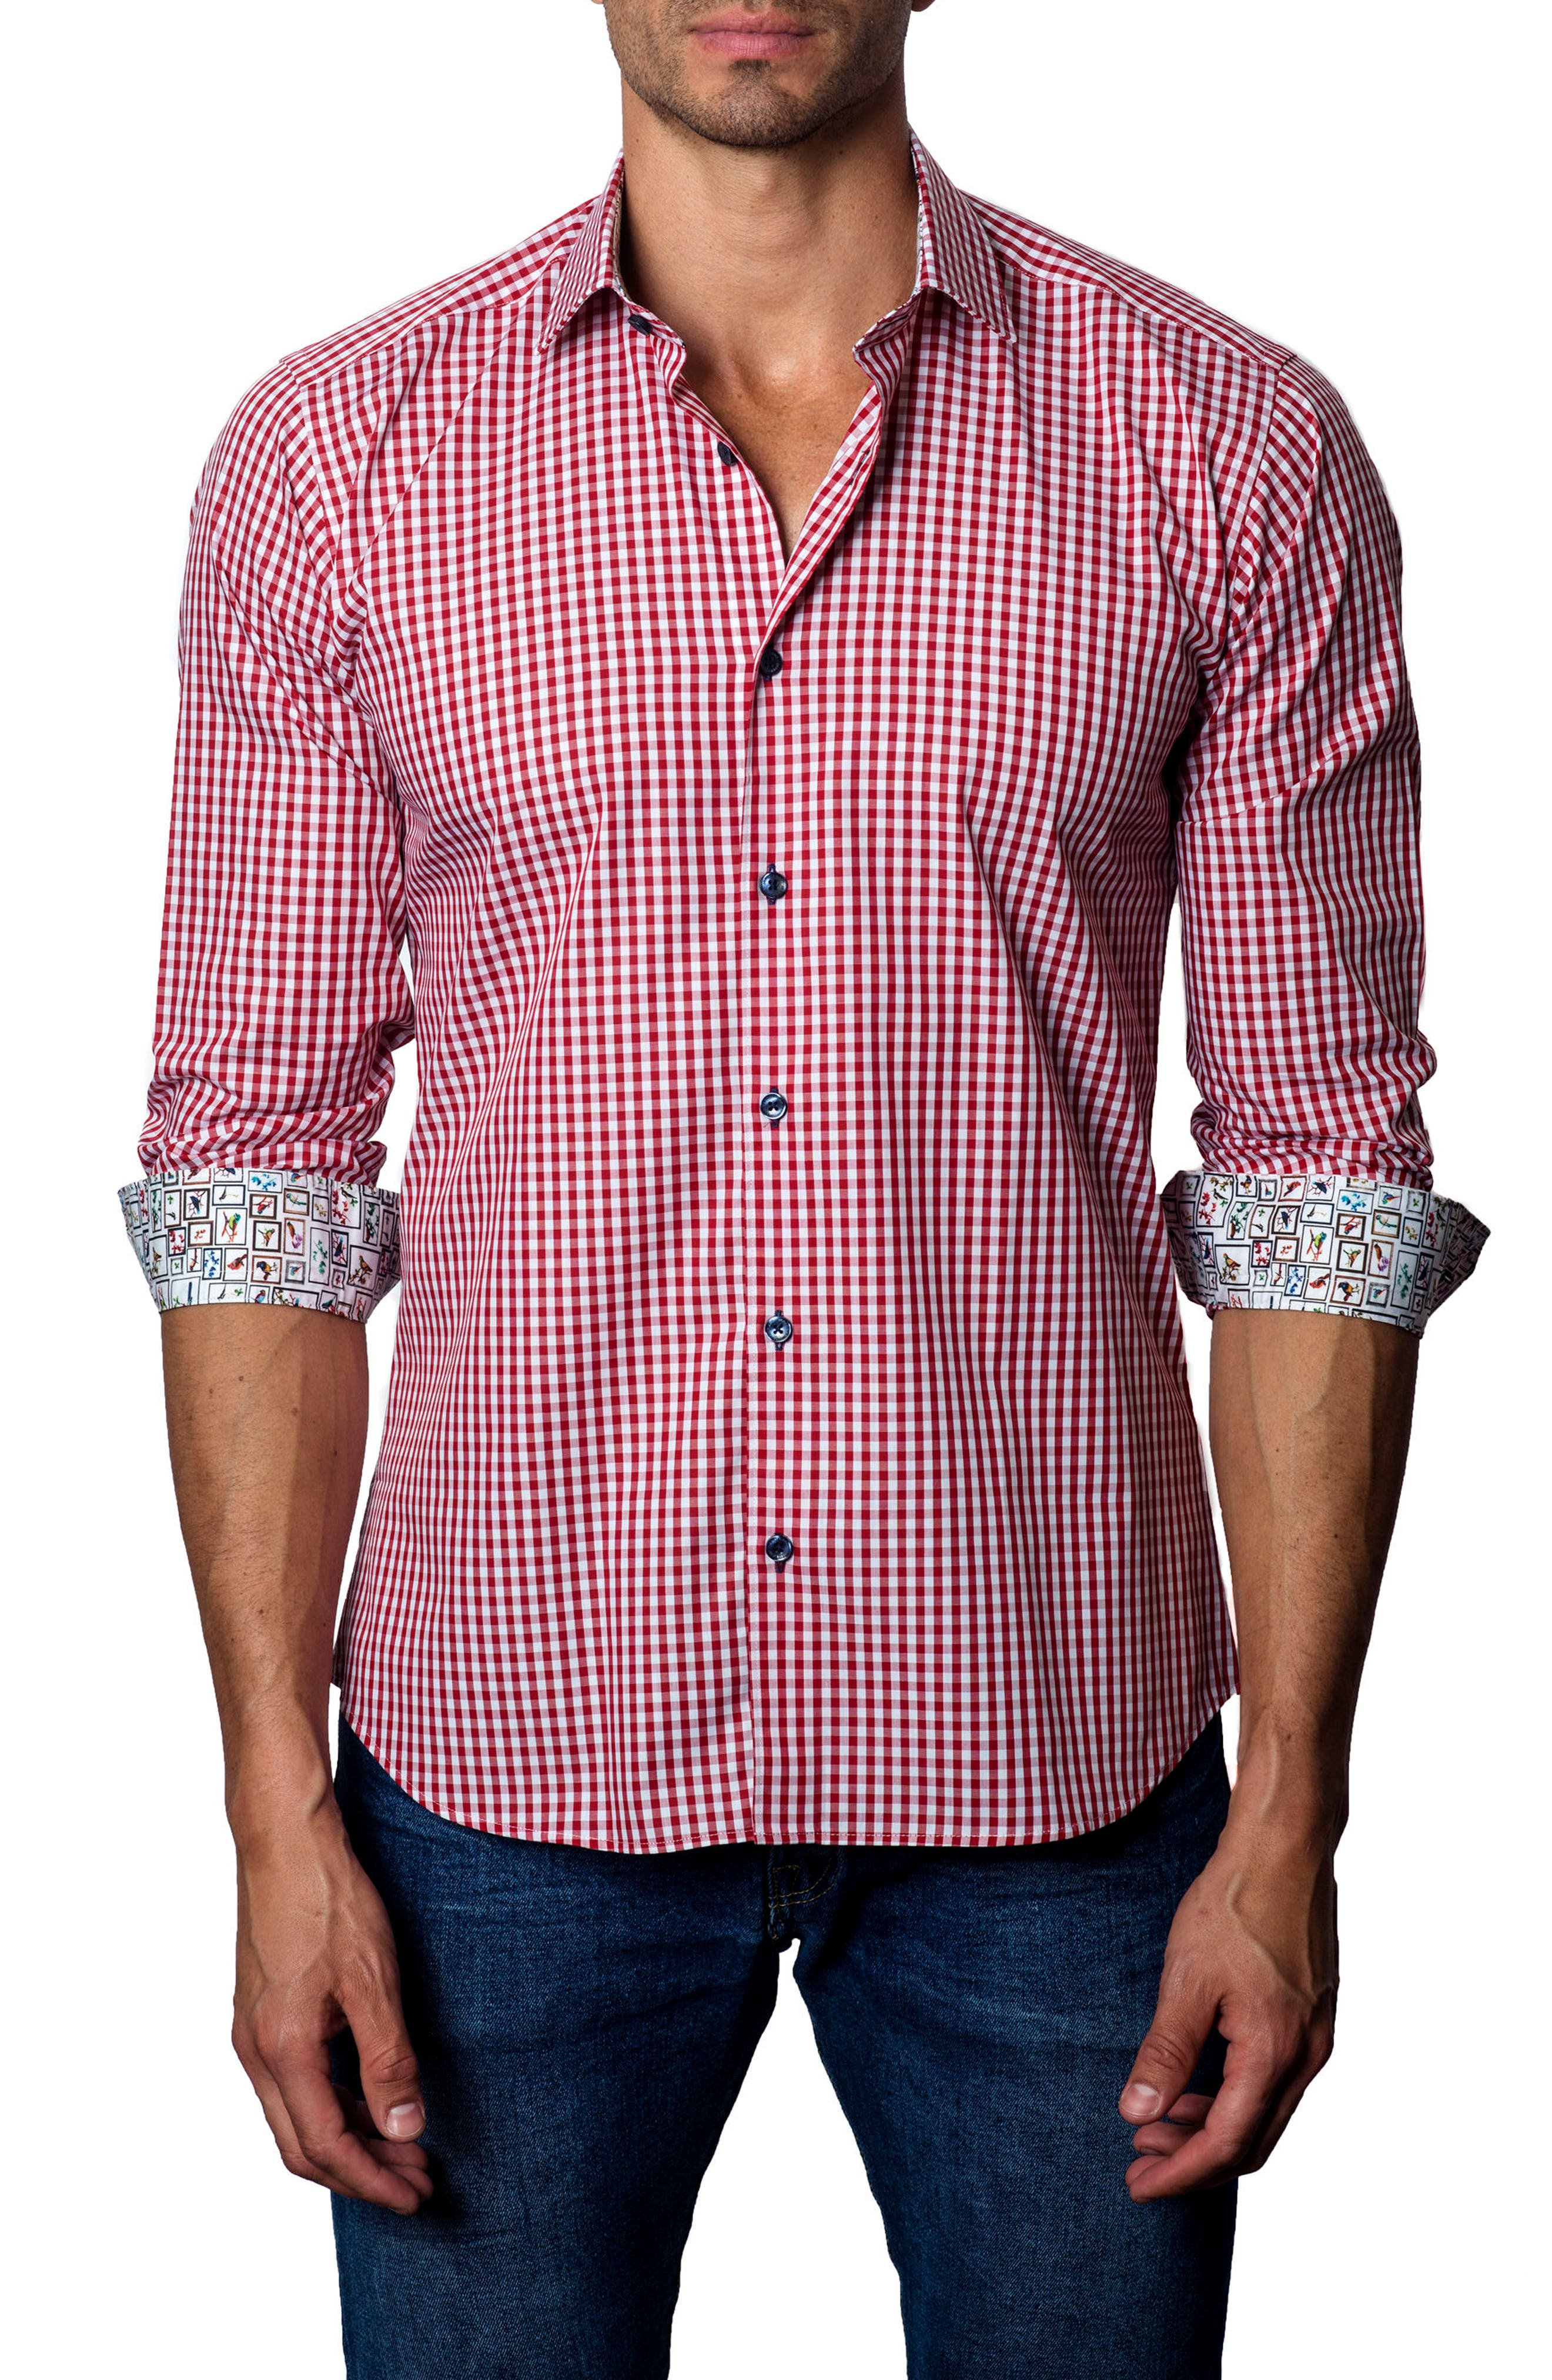 Main Image - Jared Lang Gingham Check Sport Shirt